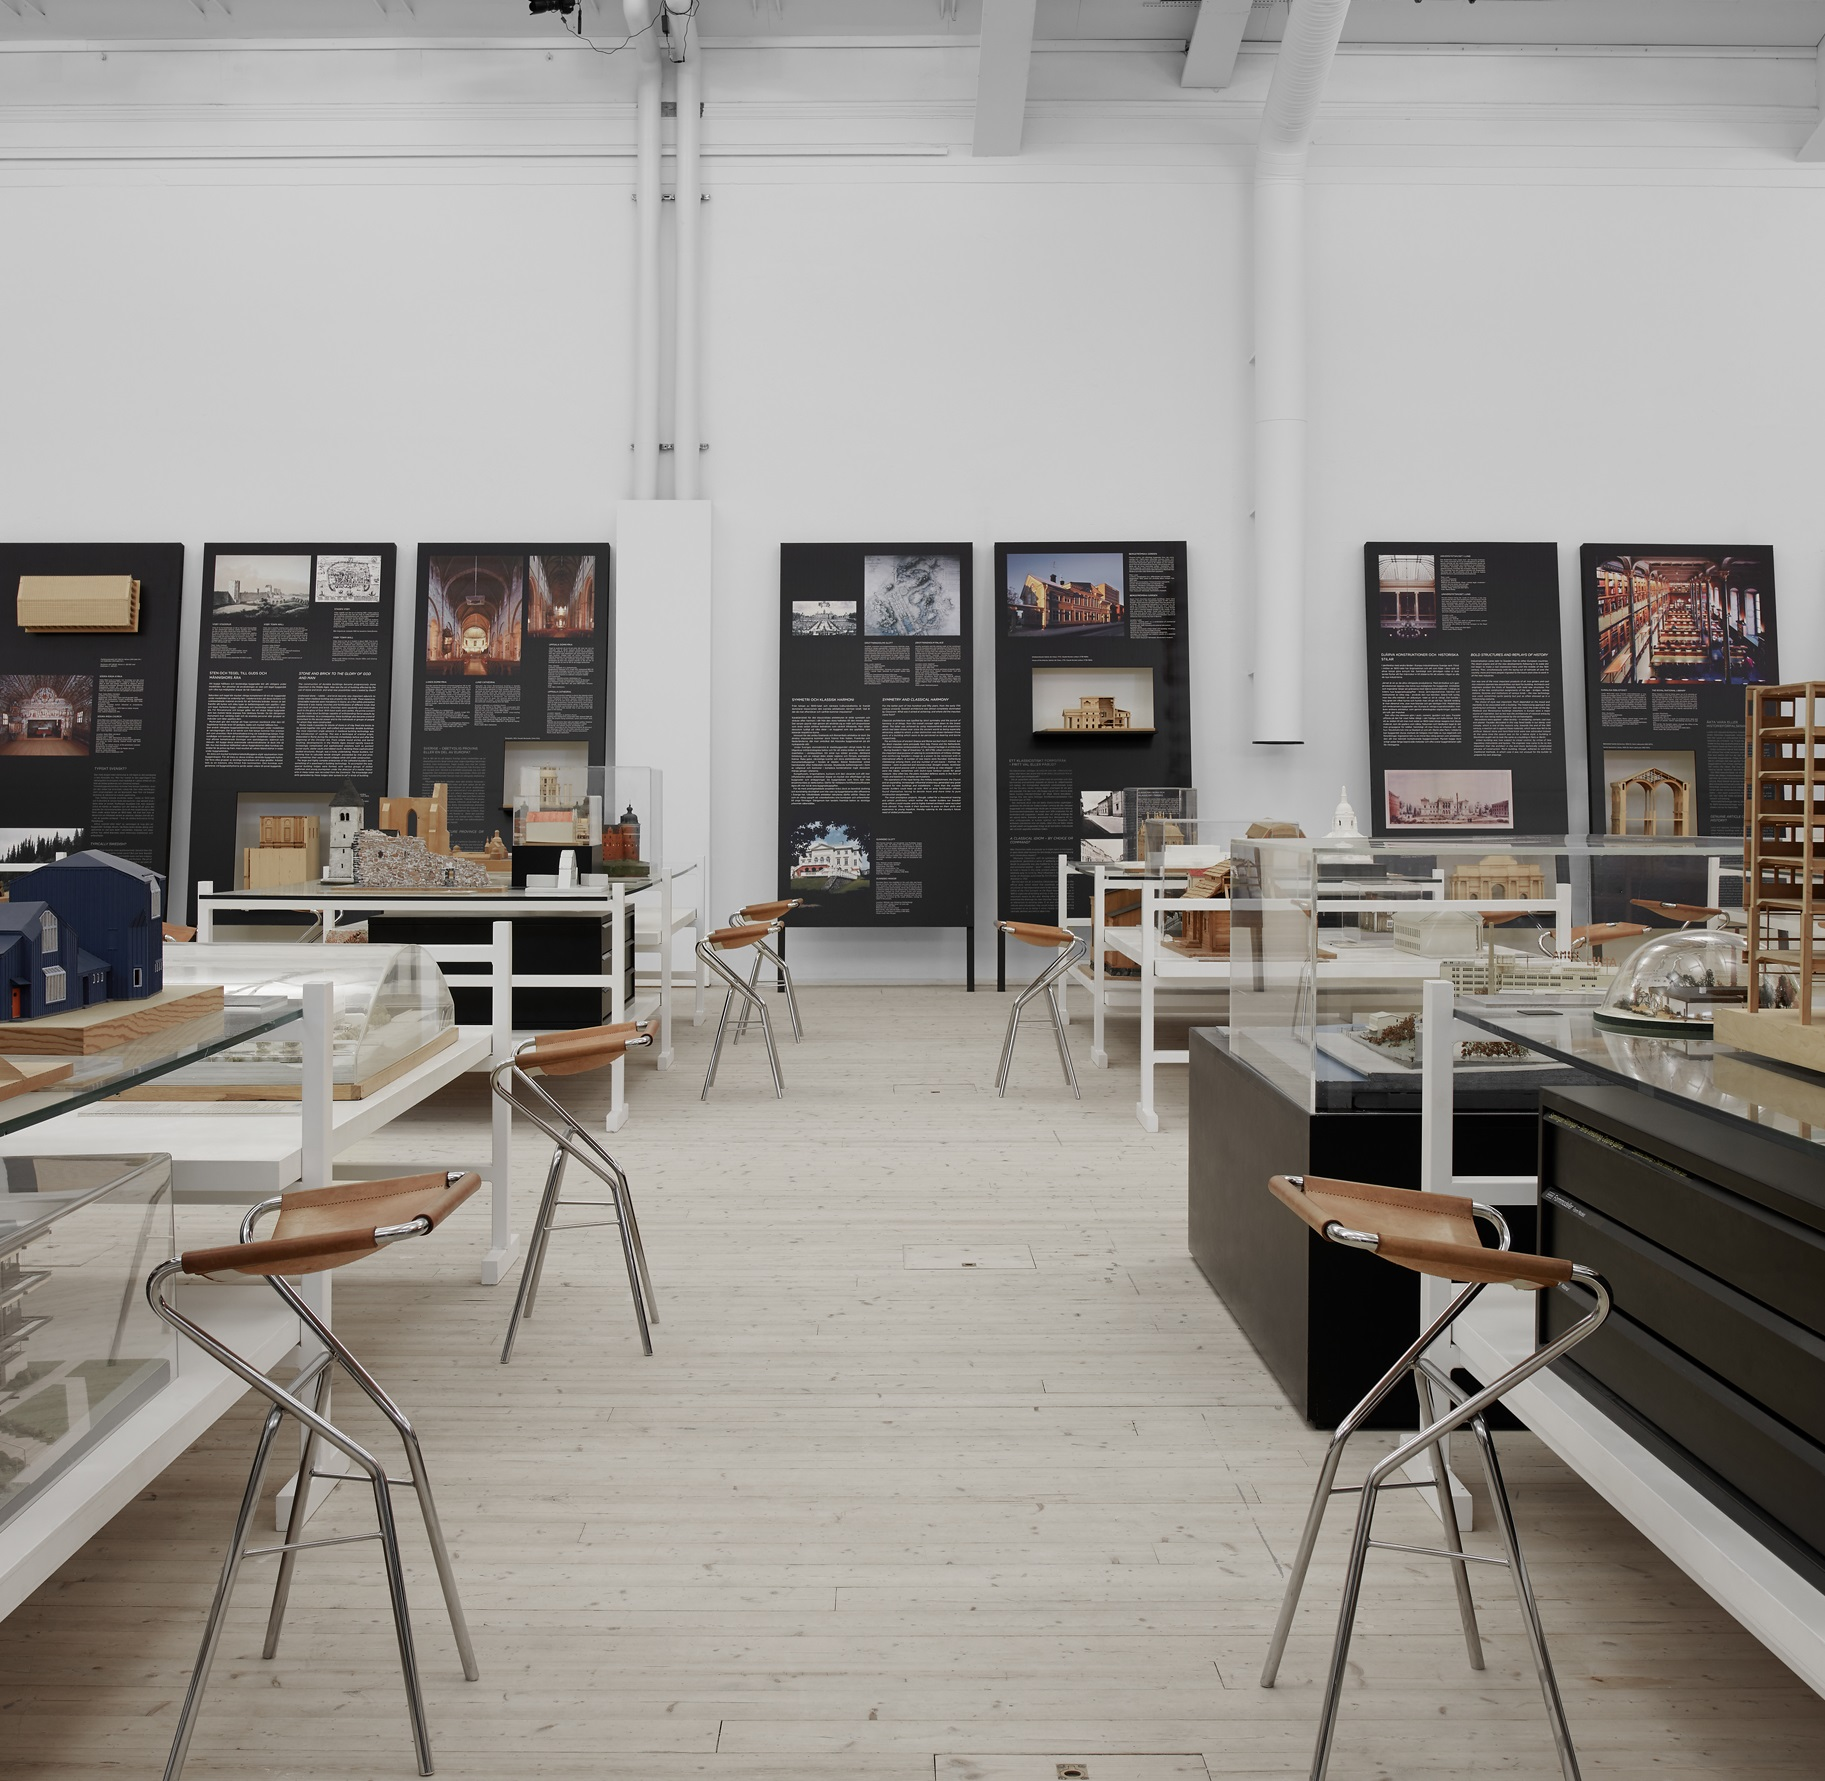 Swedish Centre For Architecture And Design (ARKDES)